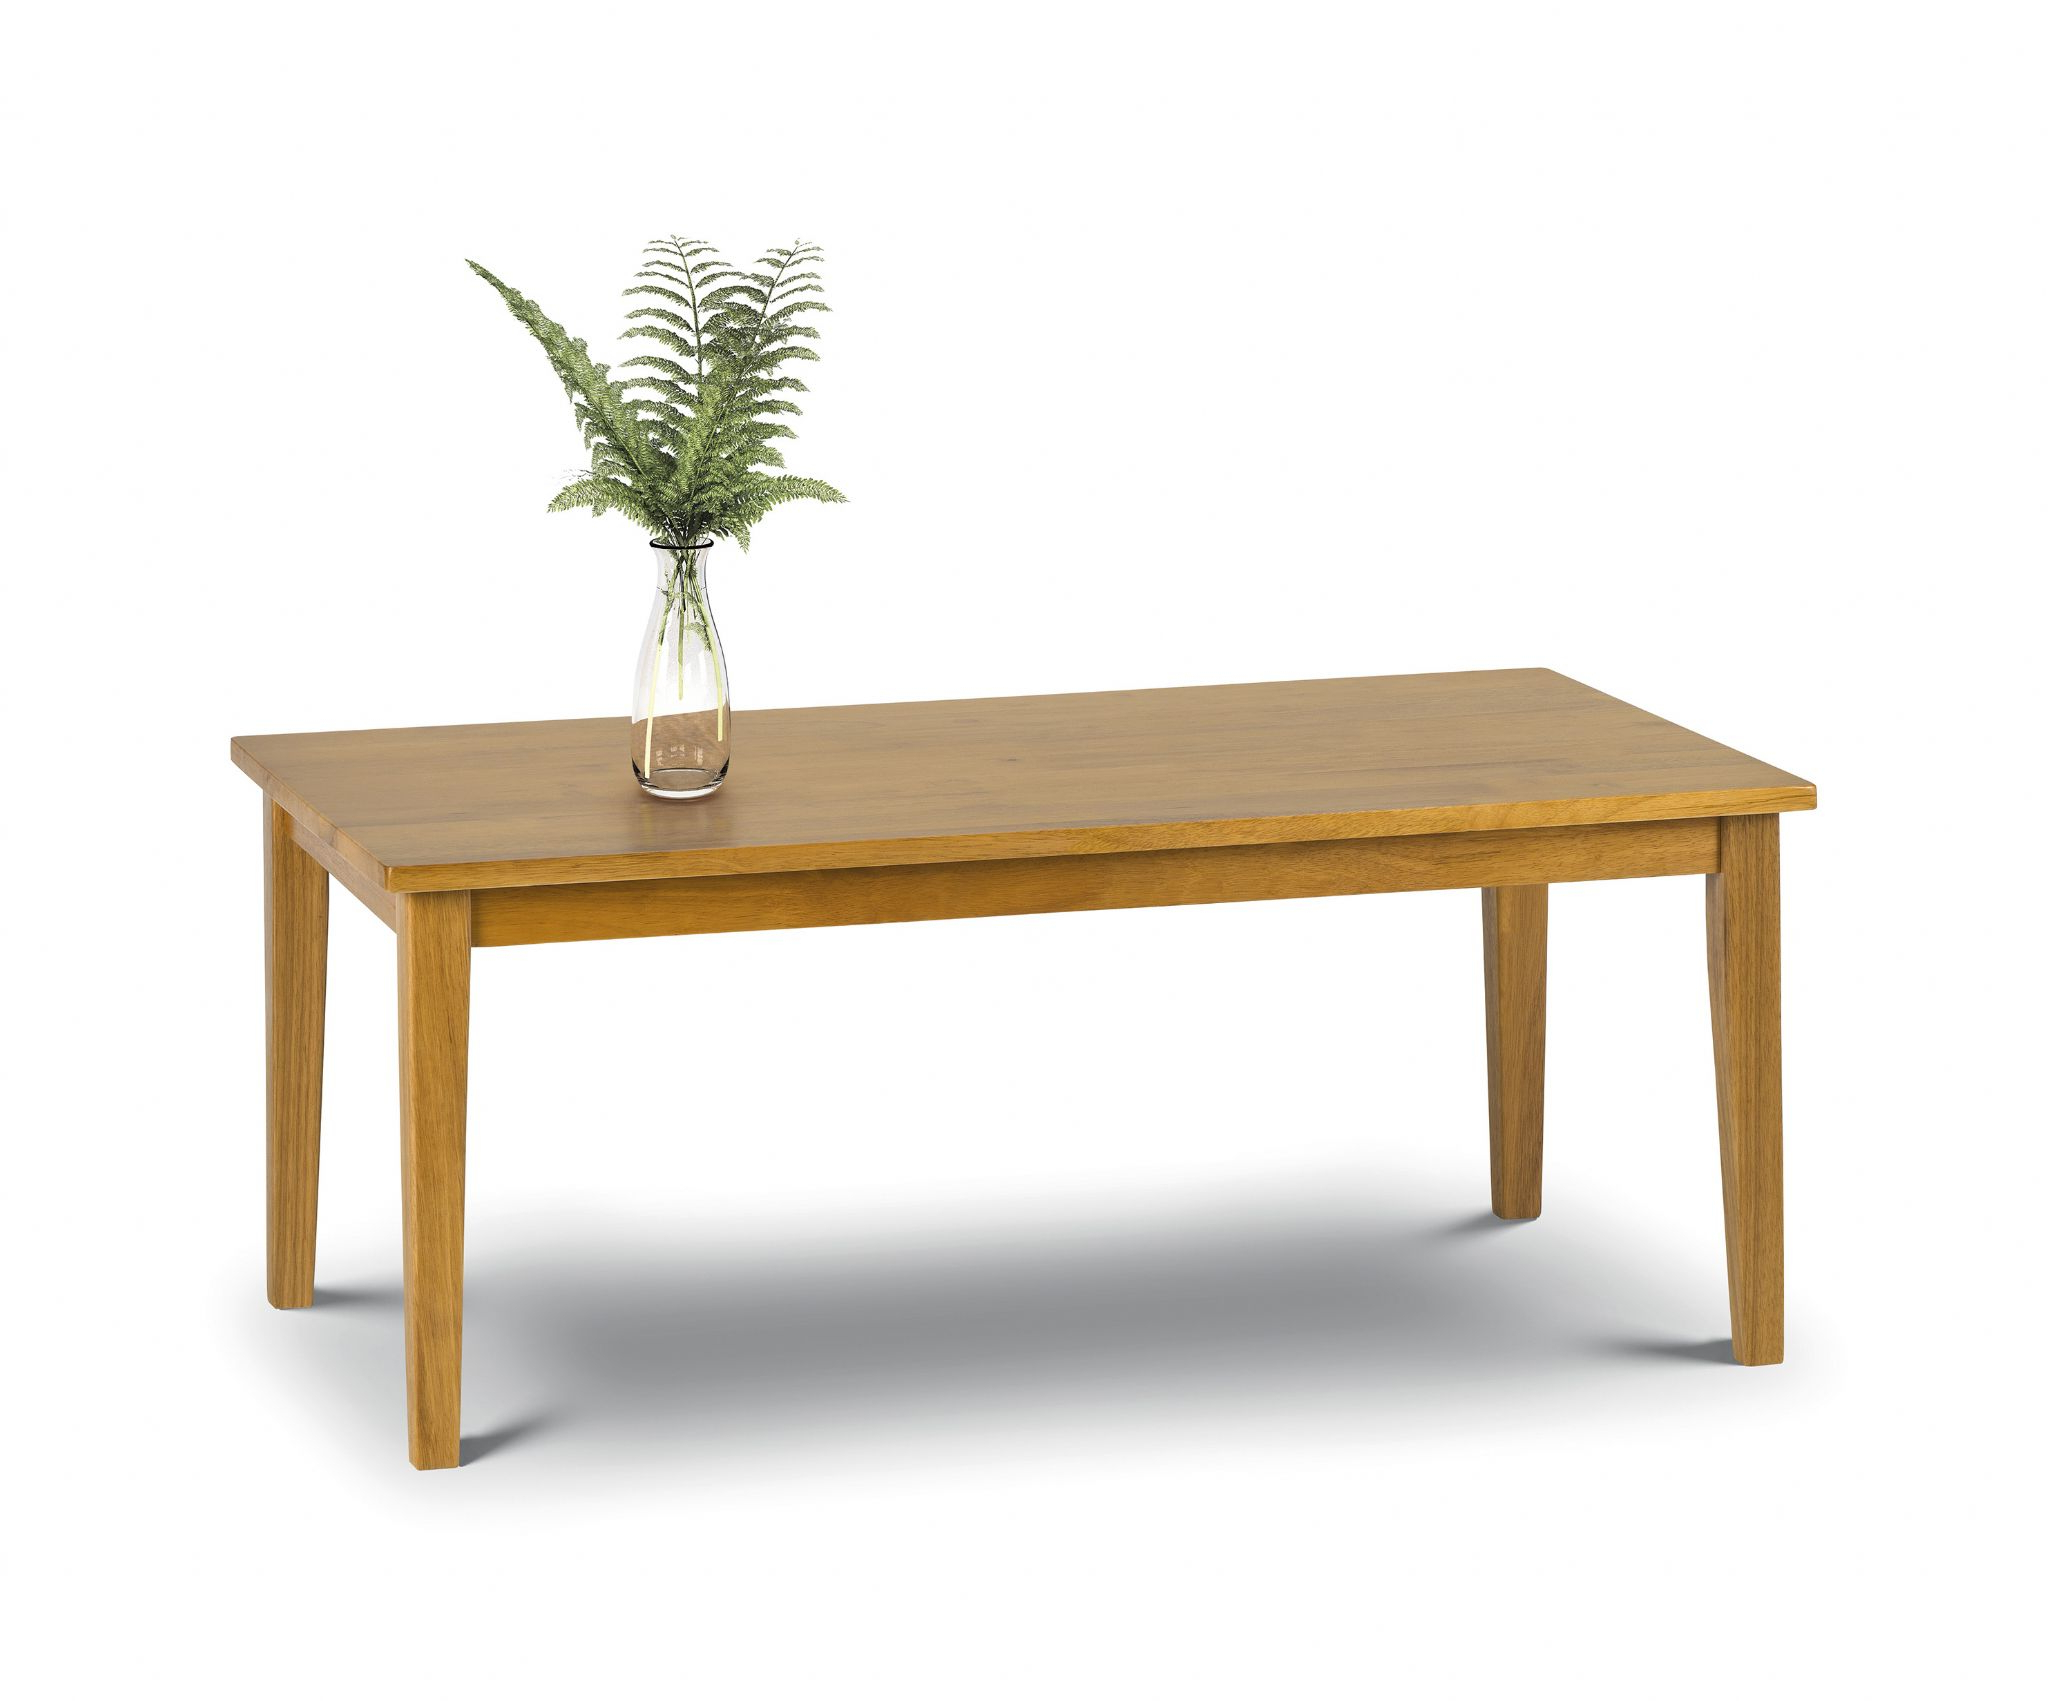 Toledo Natural Light Oak Finish Coffee Table Jb151 For Fashionable Light Natural Coffee Tables (View 16 of 20)